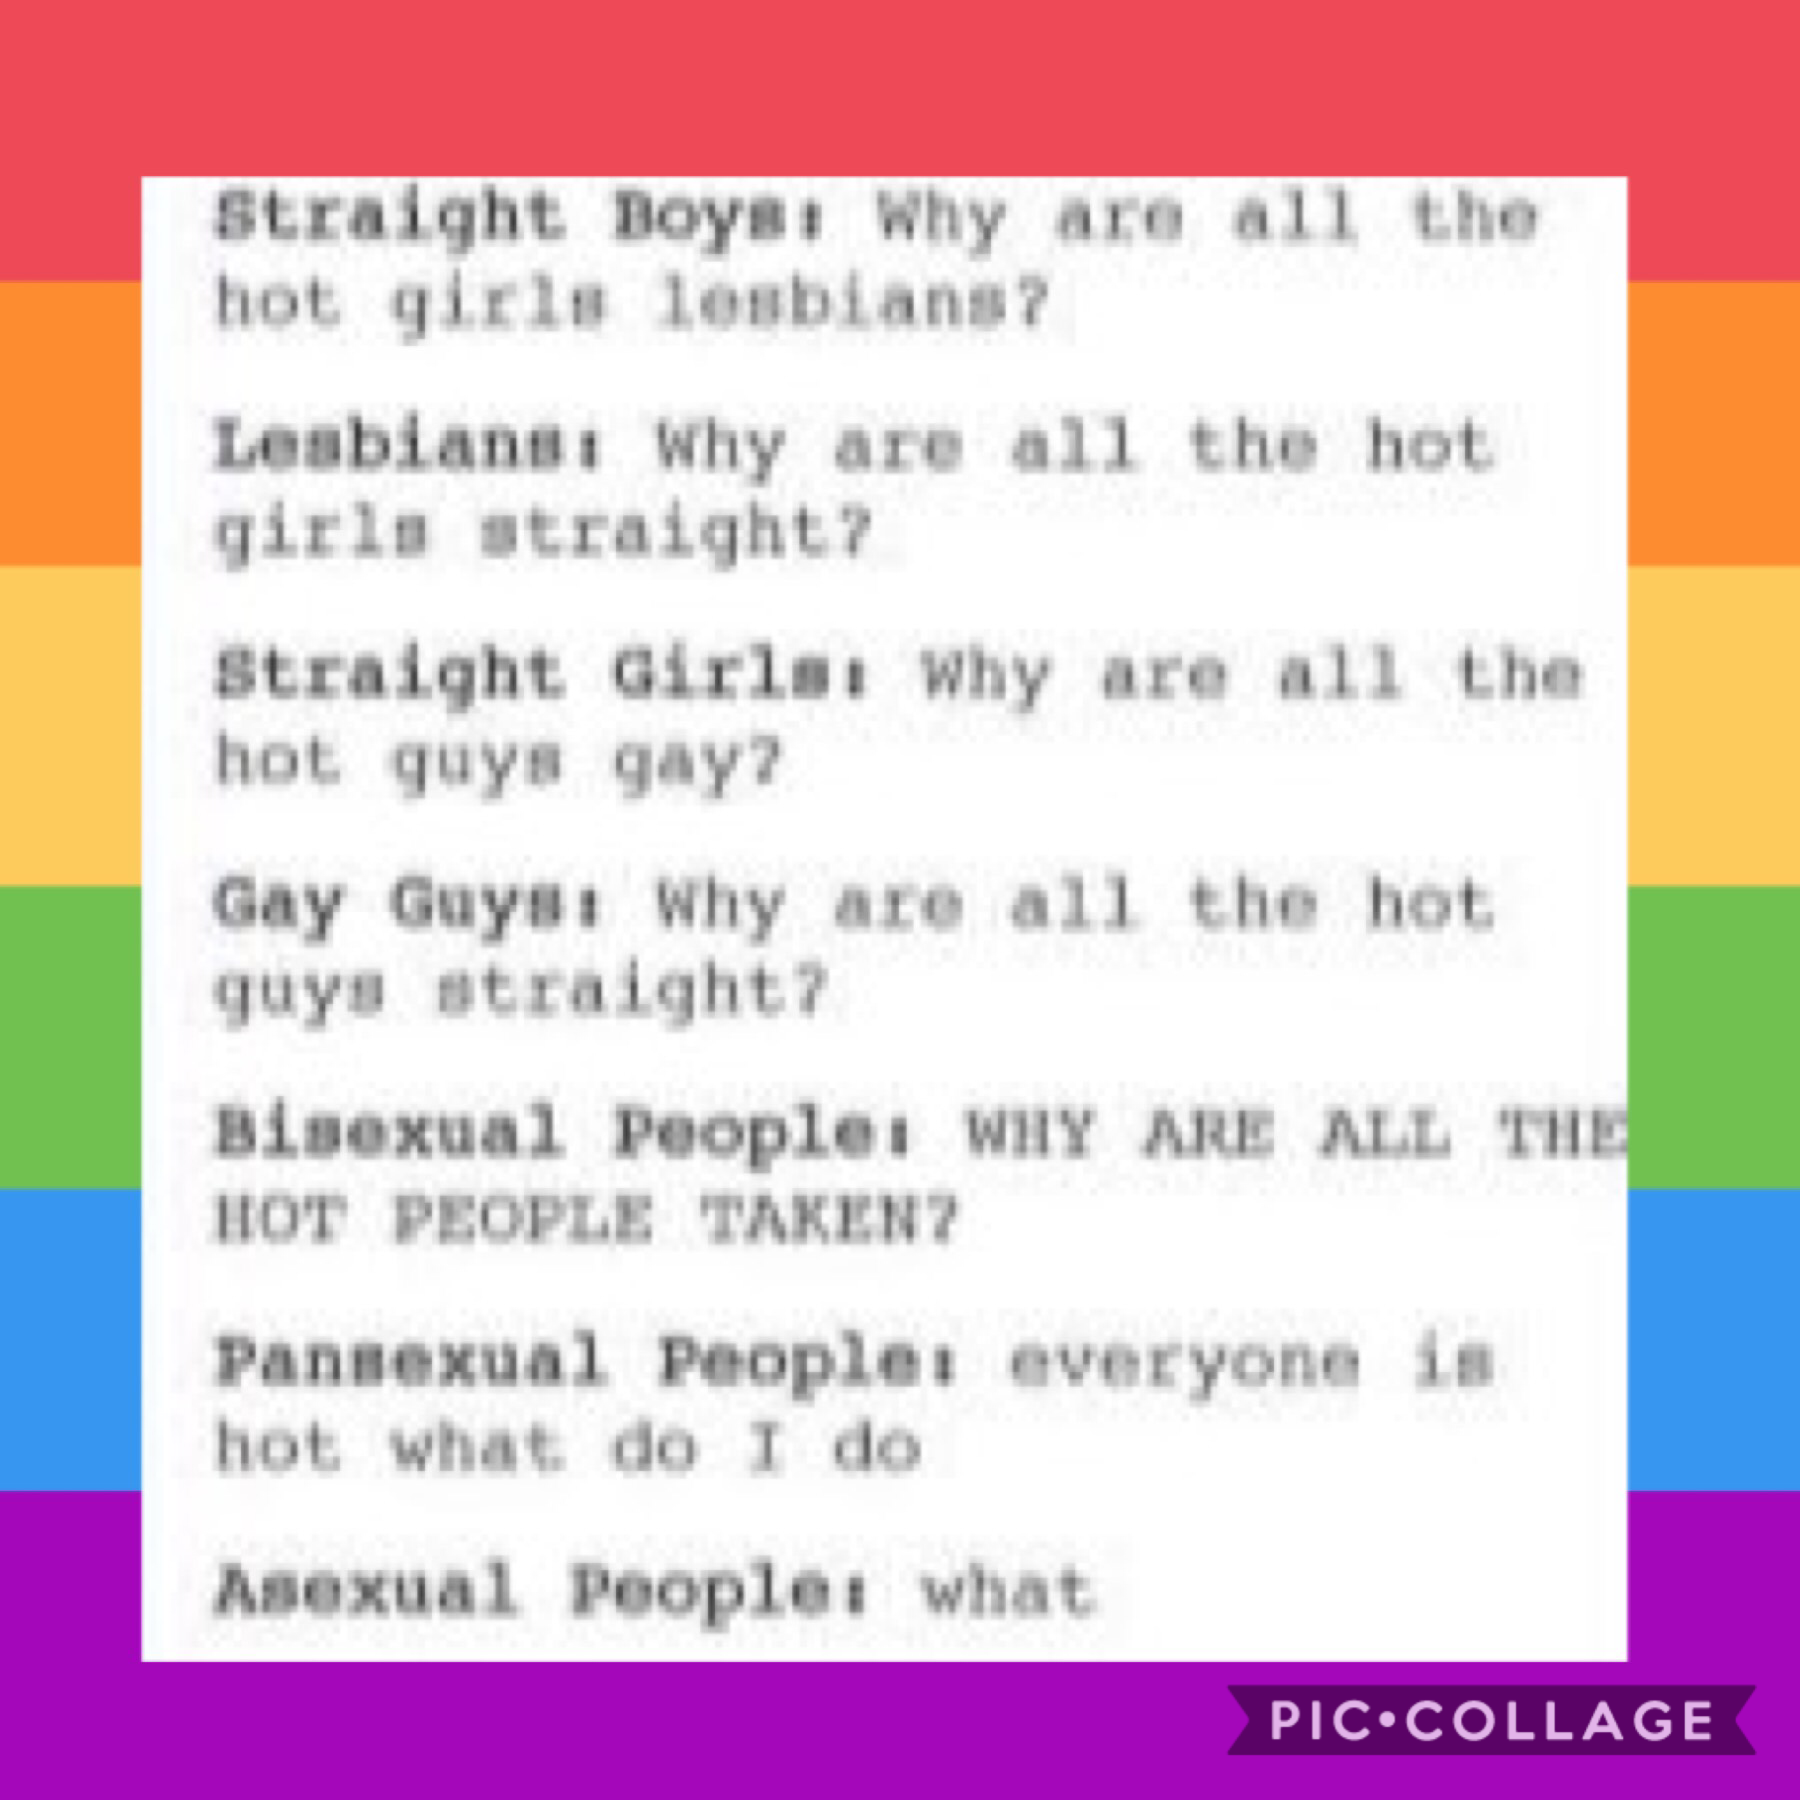 🏳️‍🌈TAP🏳️‍🌈 HAPPY PRIDE MONTH GAYSSS as you all know i'm asexual but i still need to tell y'all one thing... i'm also bi-romantic djskdk yea i like girls too,, so what? if u don't like it then unfollow me, block me, do whatever the fūčk you want. i am wha